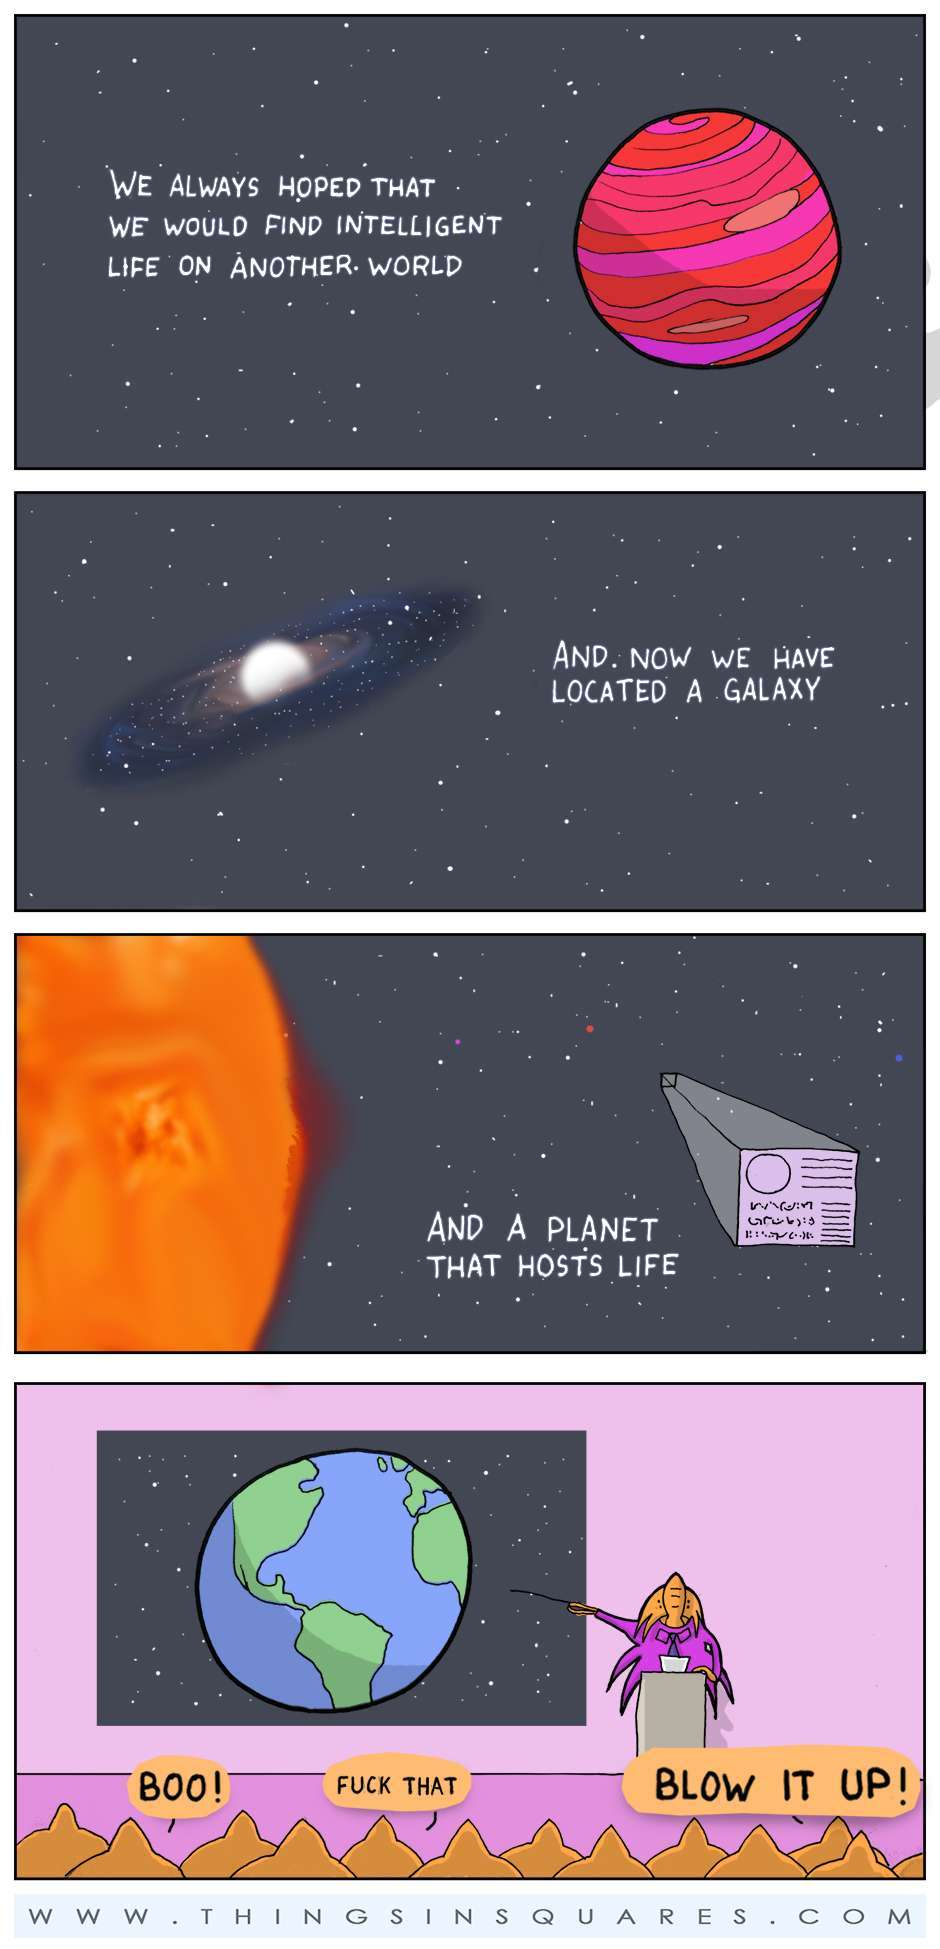 how aliens think of contacting earth - meme